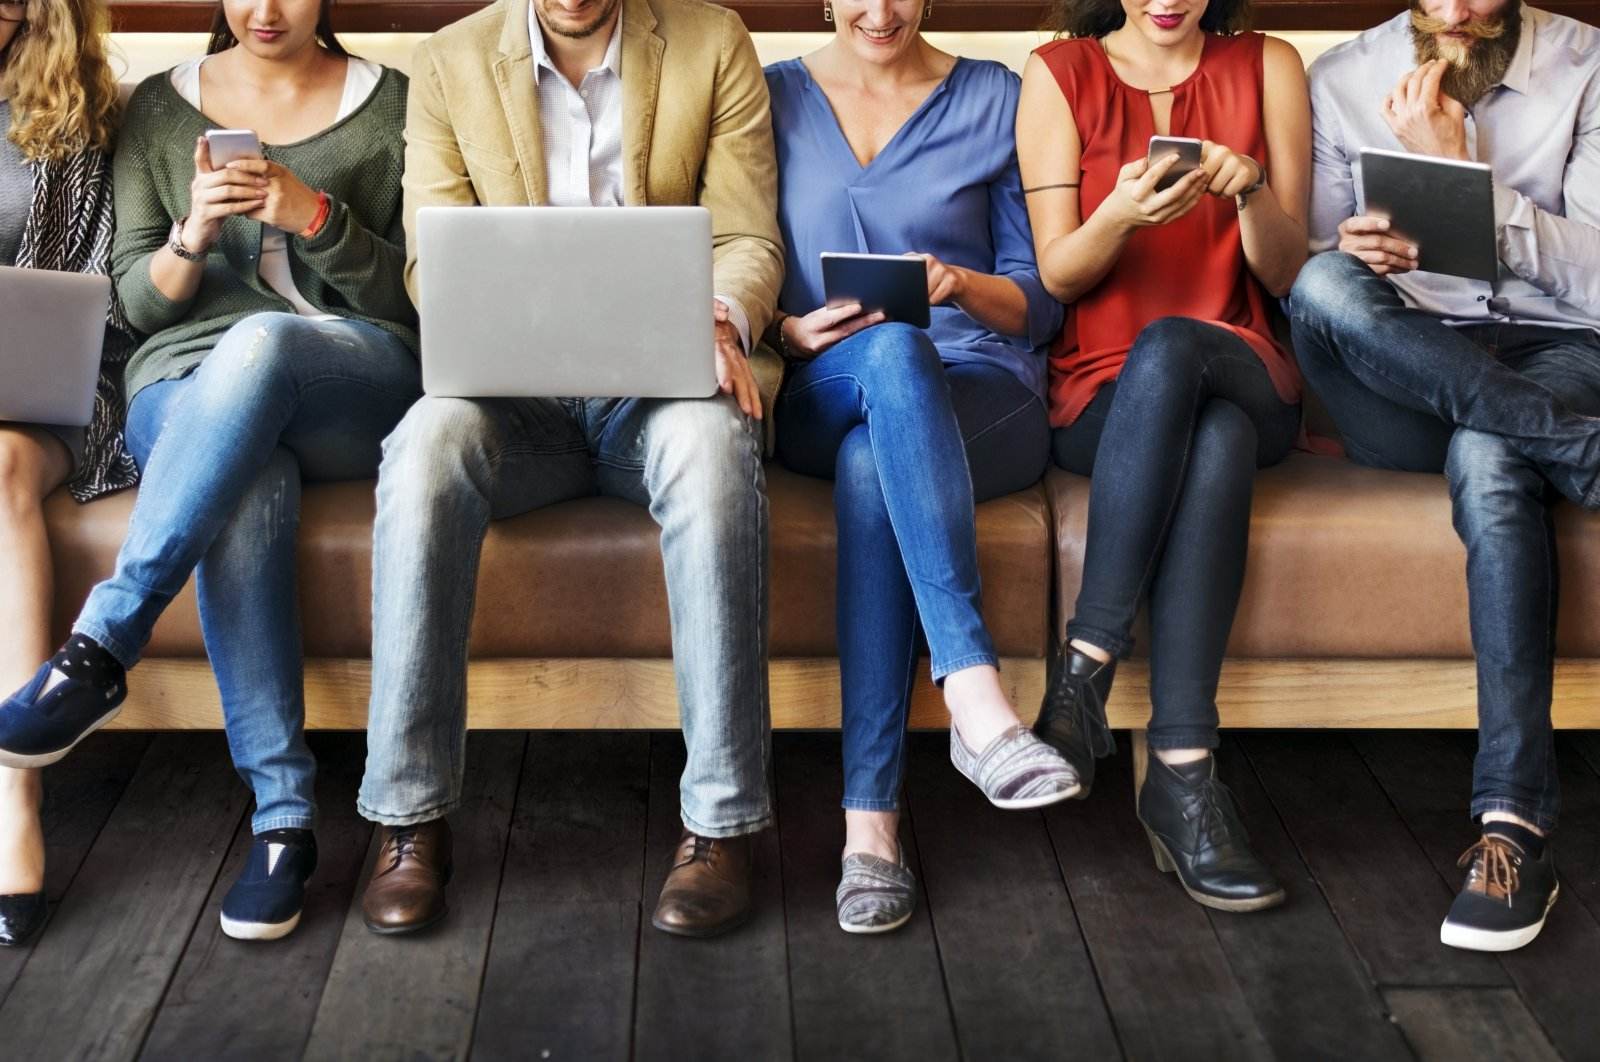 A group of people busy with their laptops, tablets and phones. (iStockphoto Photo)